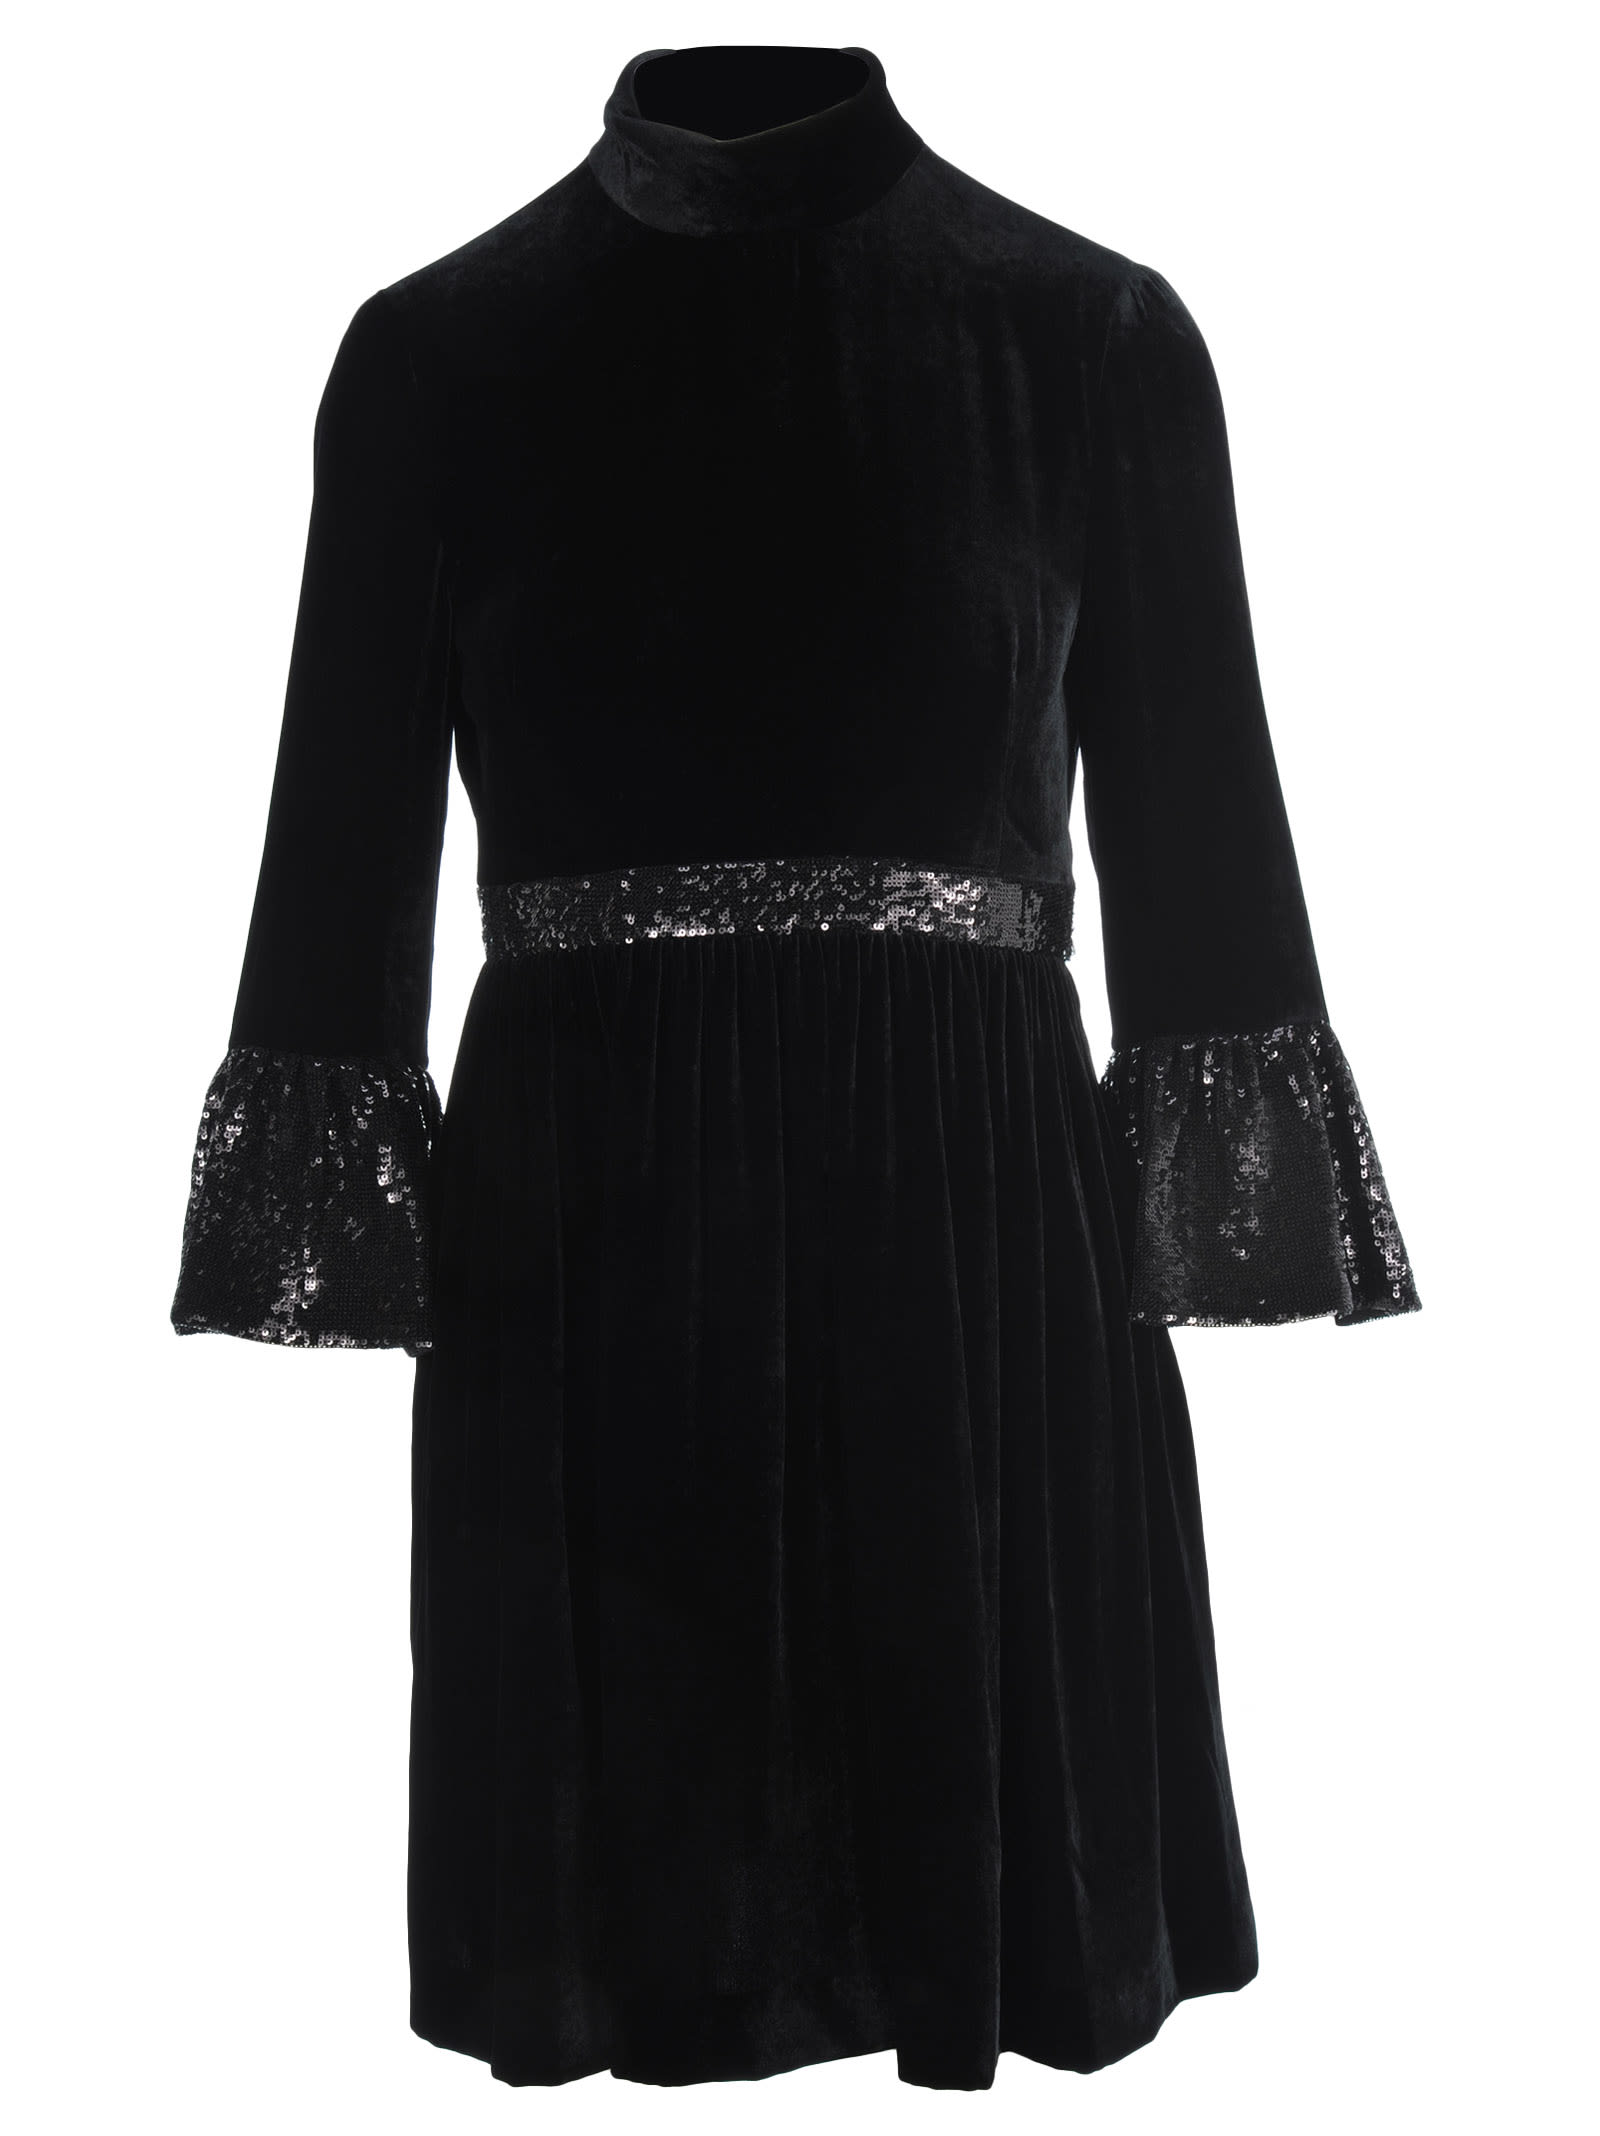 Miu Miu Sequins Embellished Velvet Dress